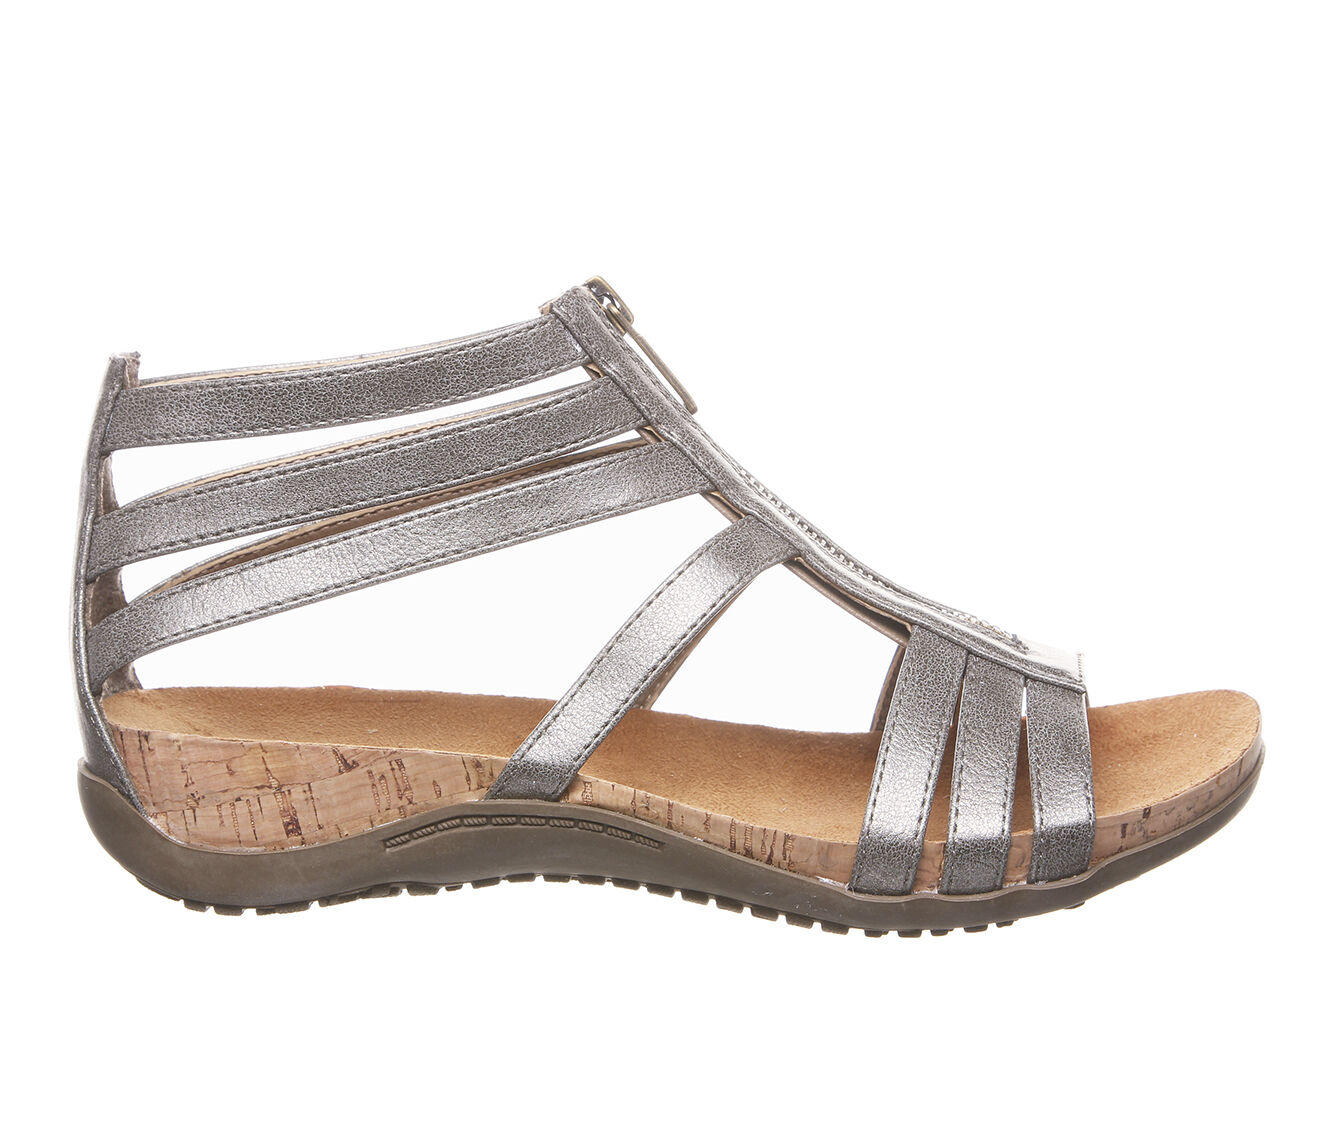 choose authentic cheap Women's Bearpaw Layla Footbed Sandals Pewter